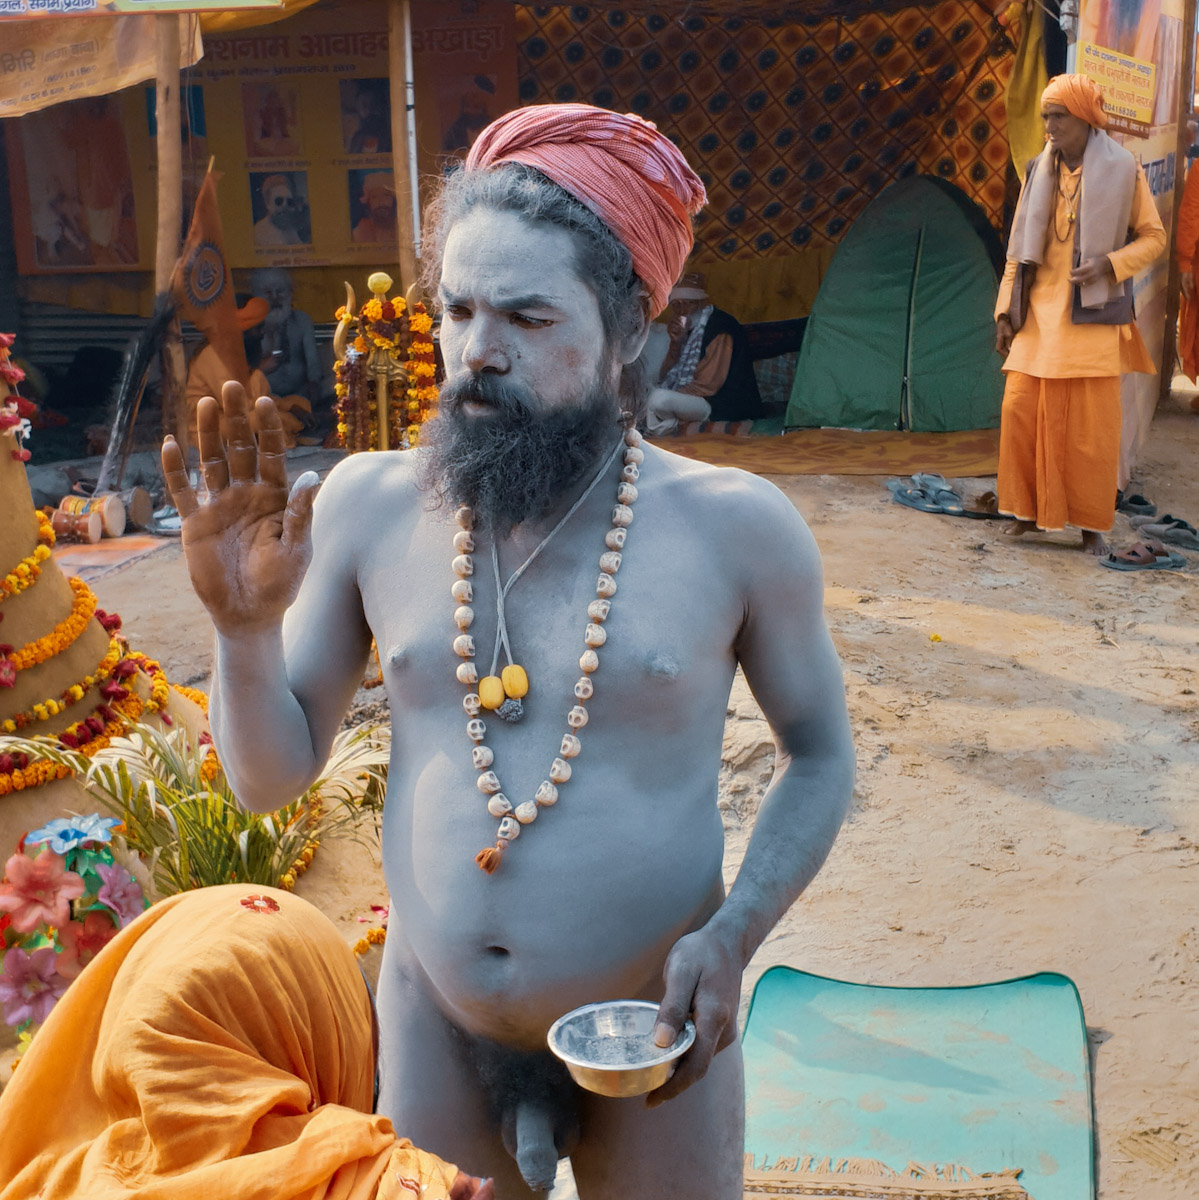 Naga Sadhu giving a blessing at the kumbh mela